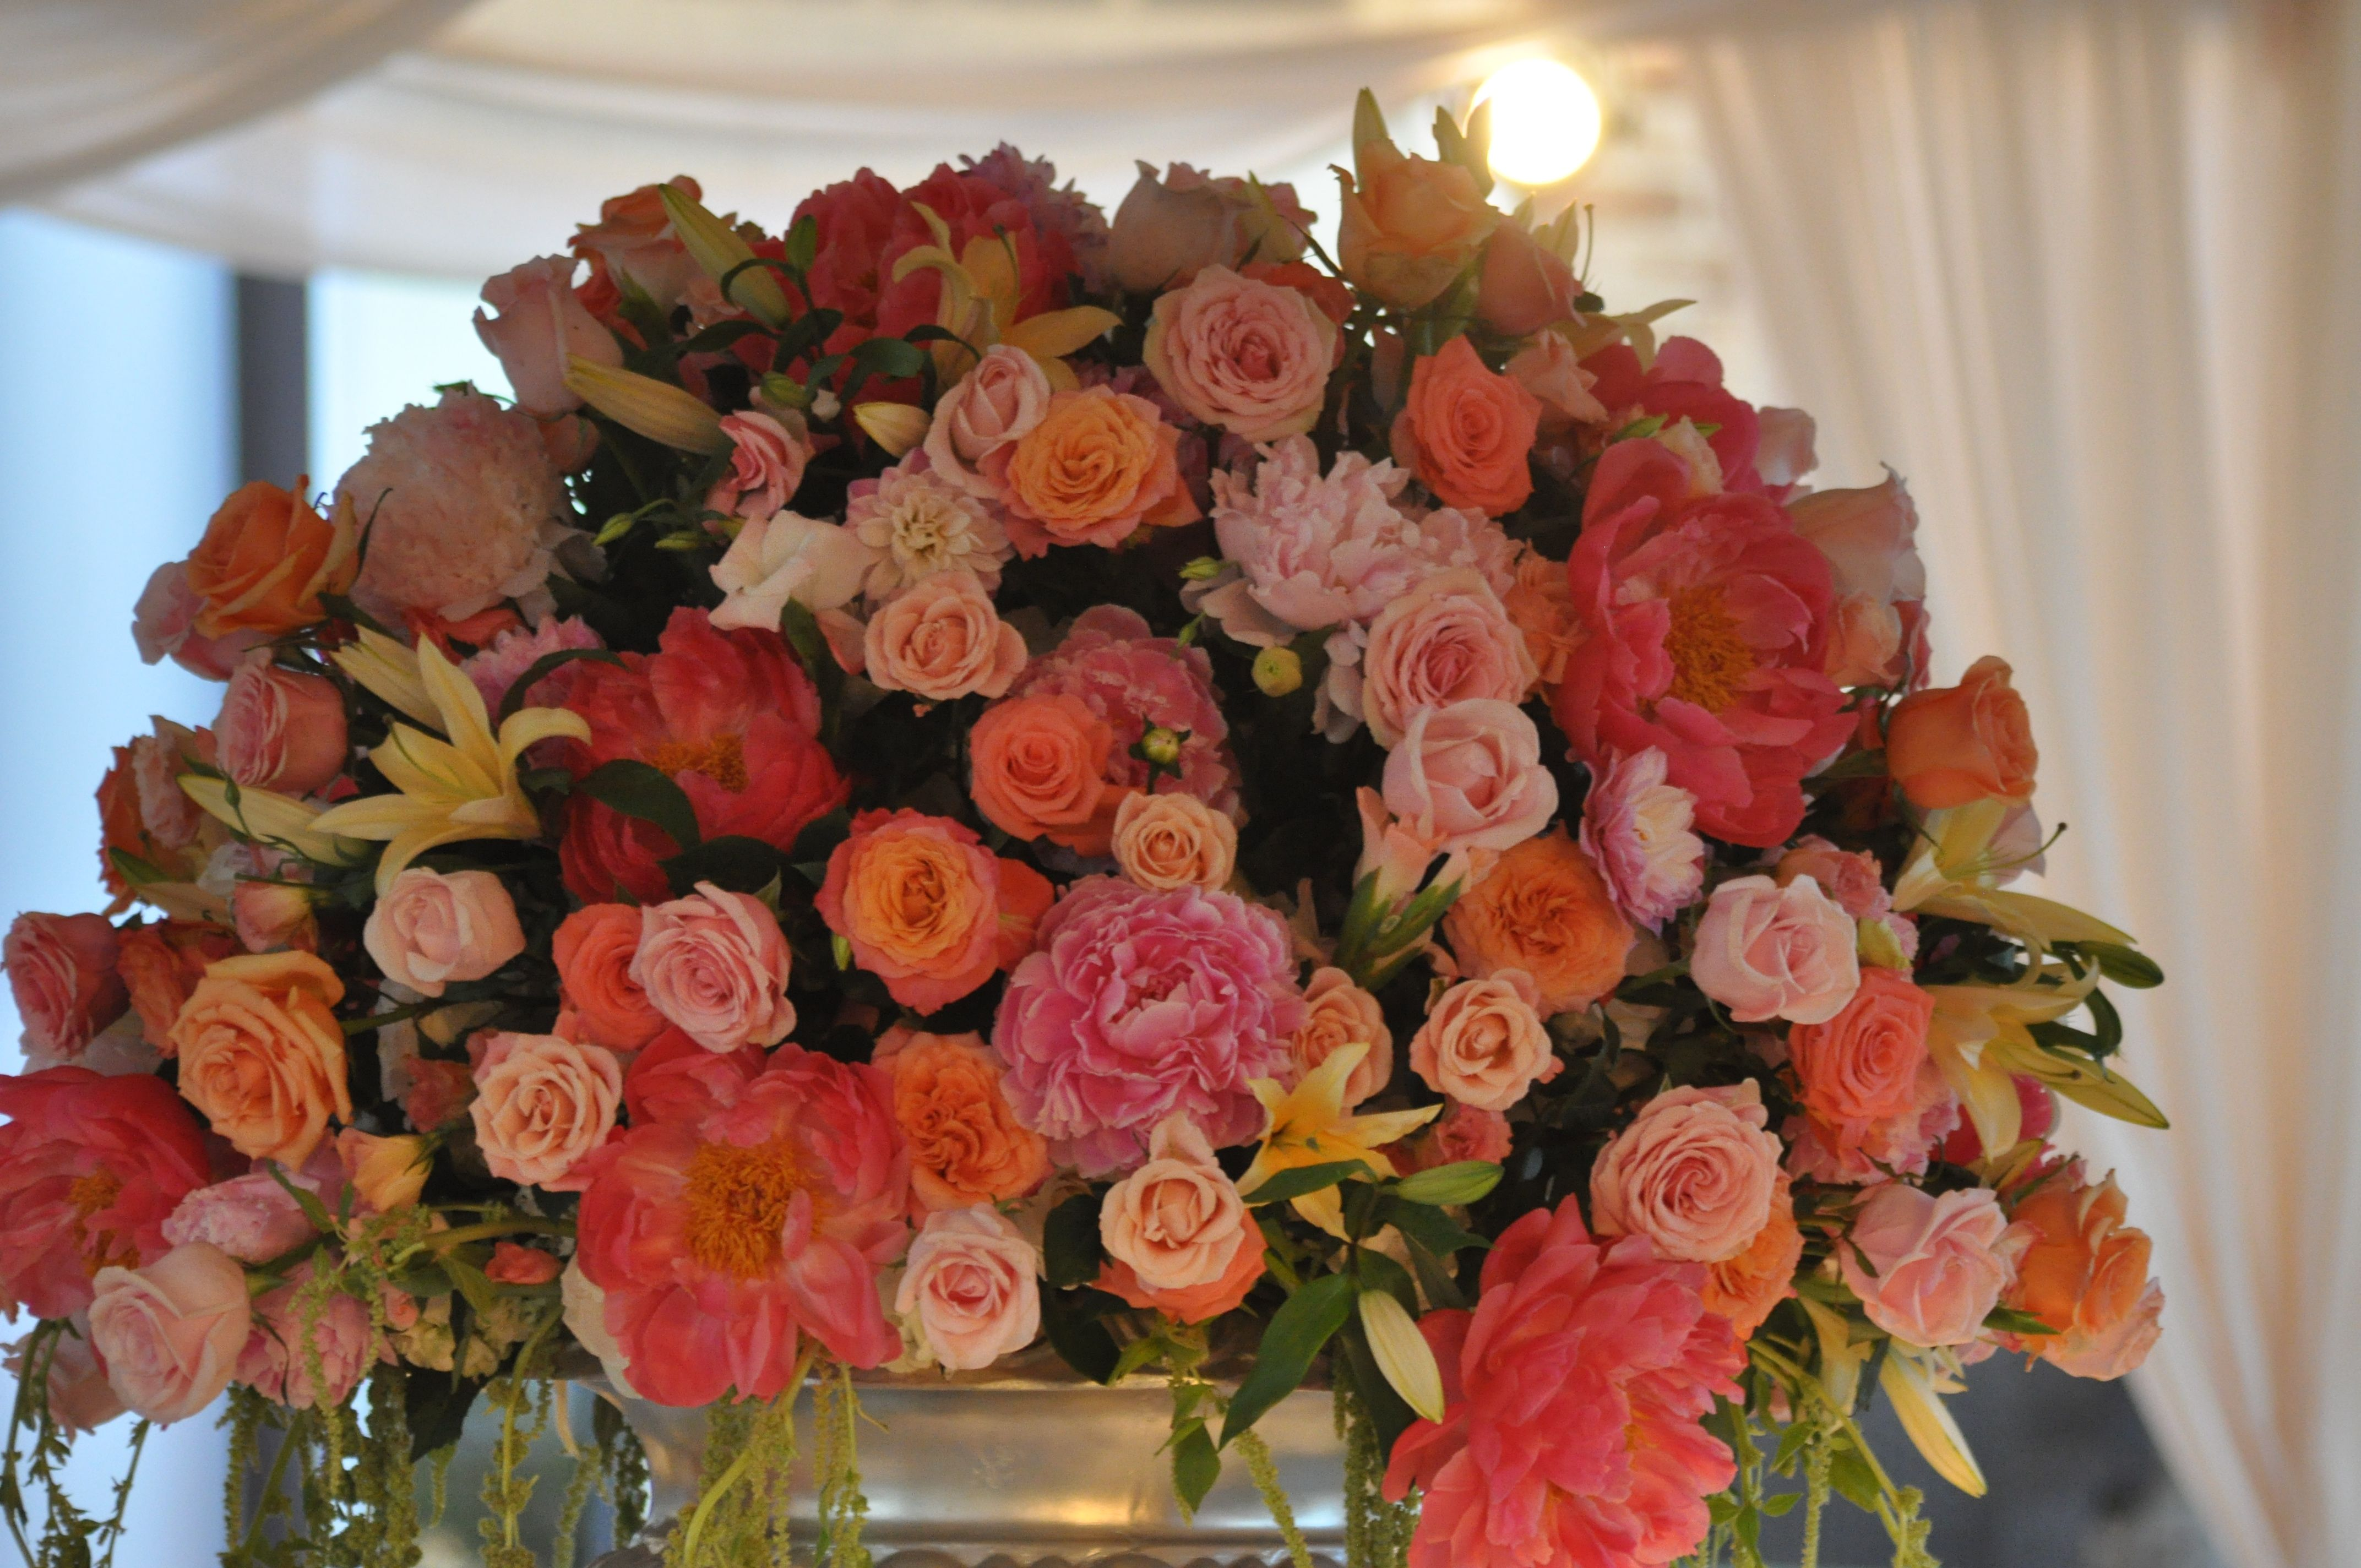 Reuse alter flowers for a statement center piece at the